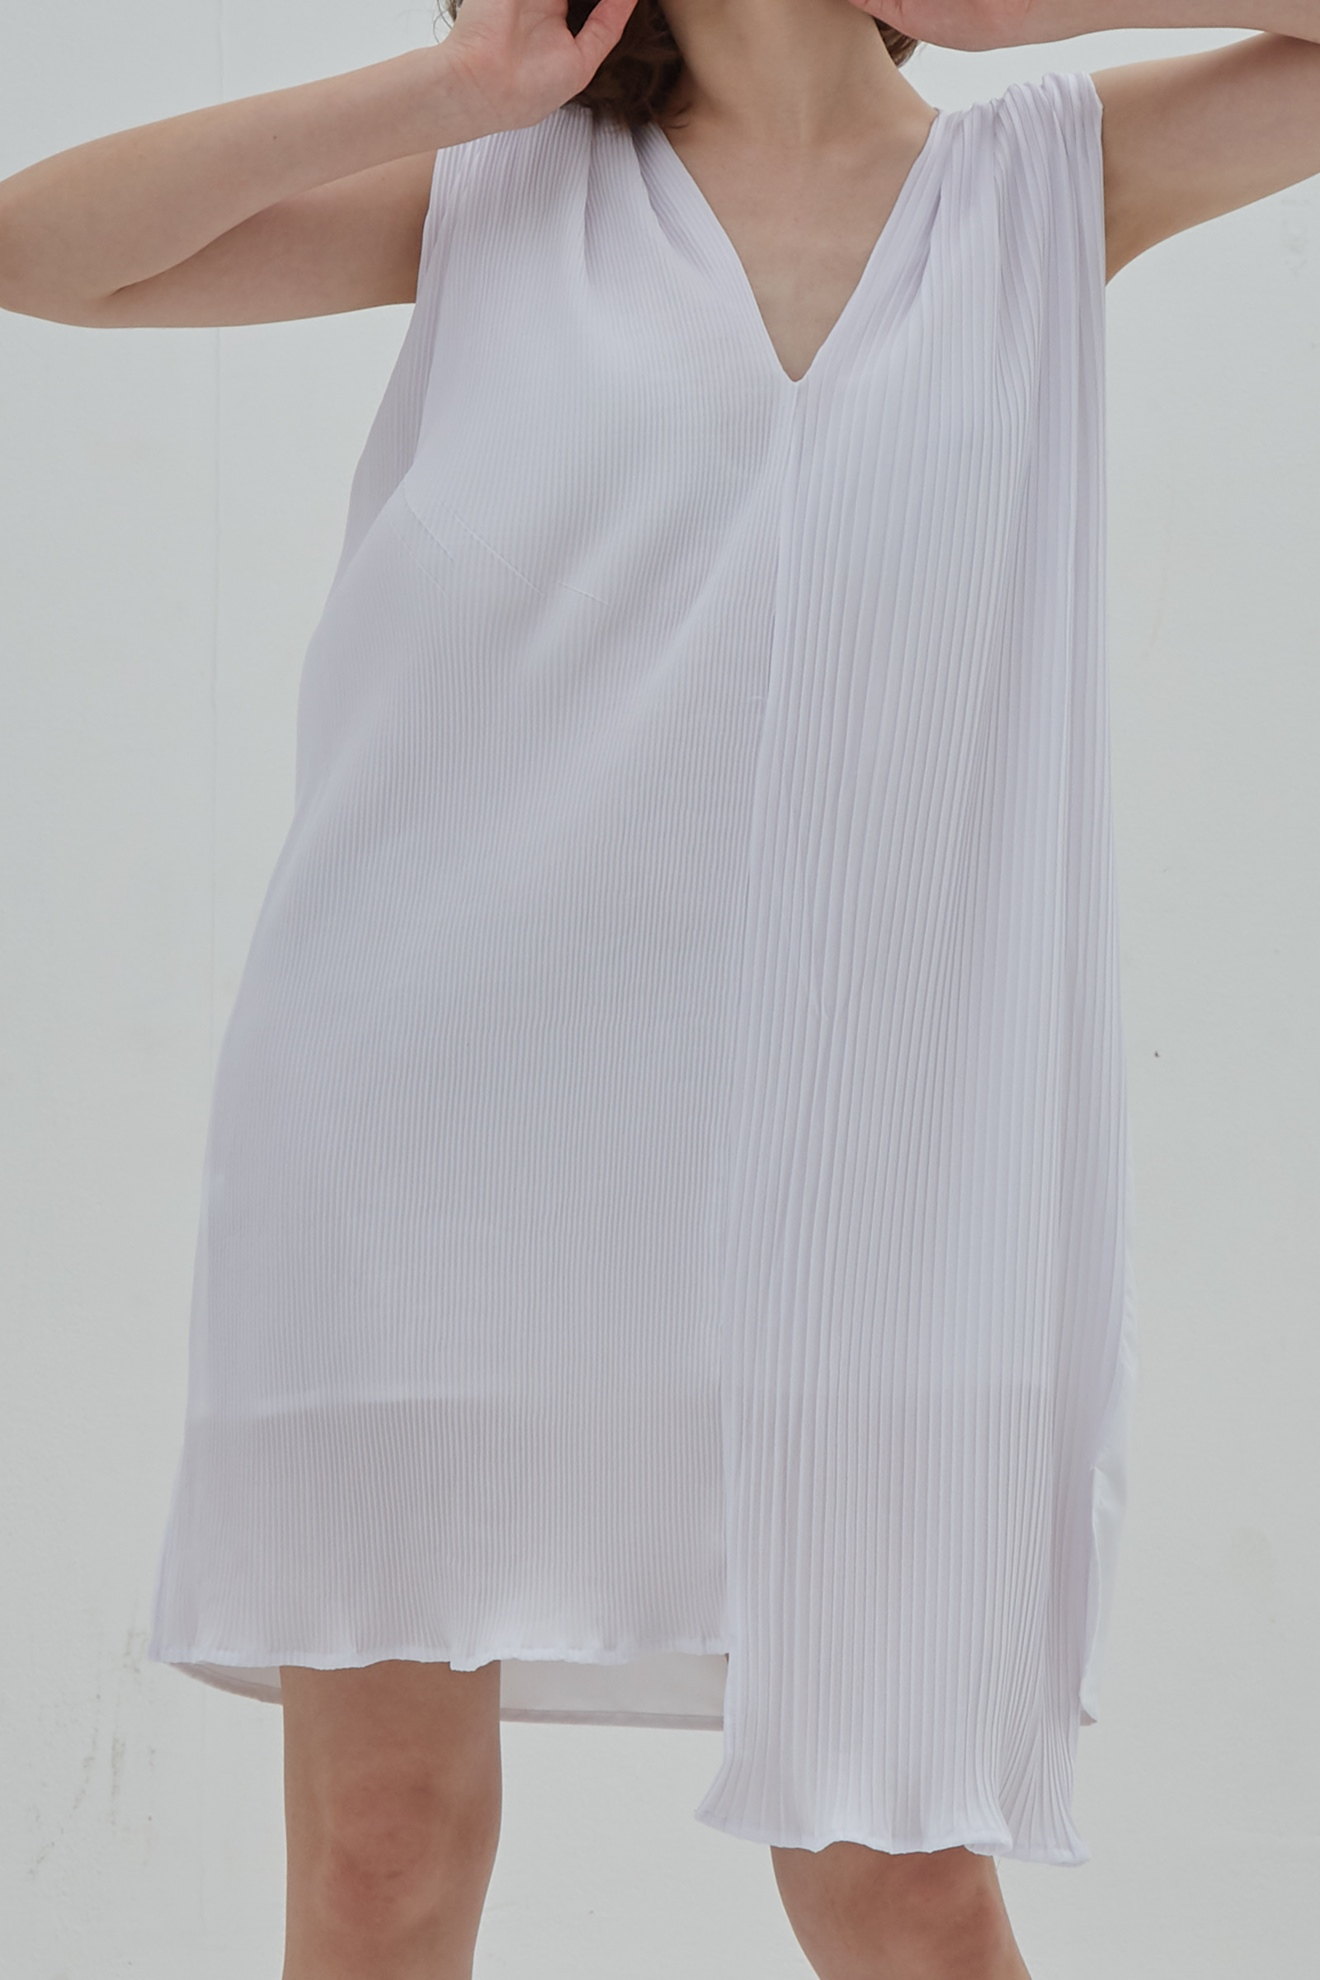 Picture of Narcisse Dress Ivory